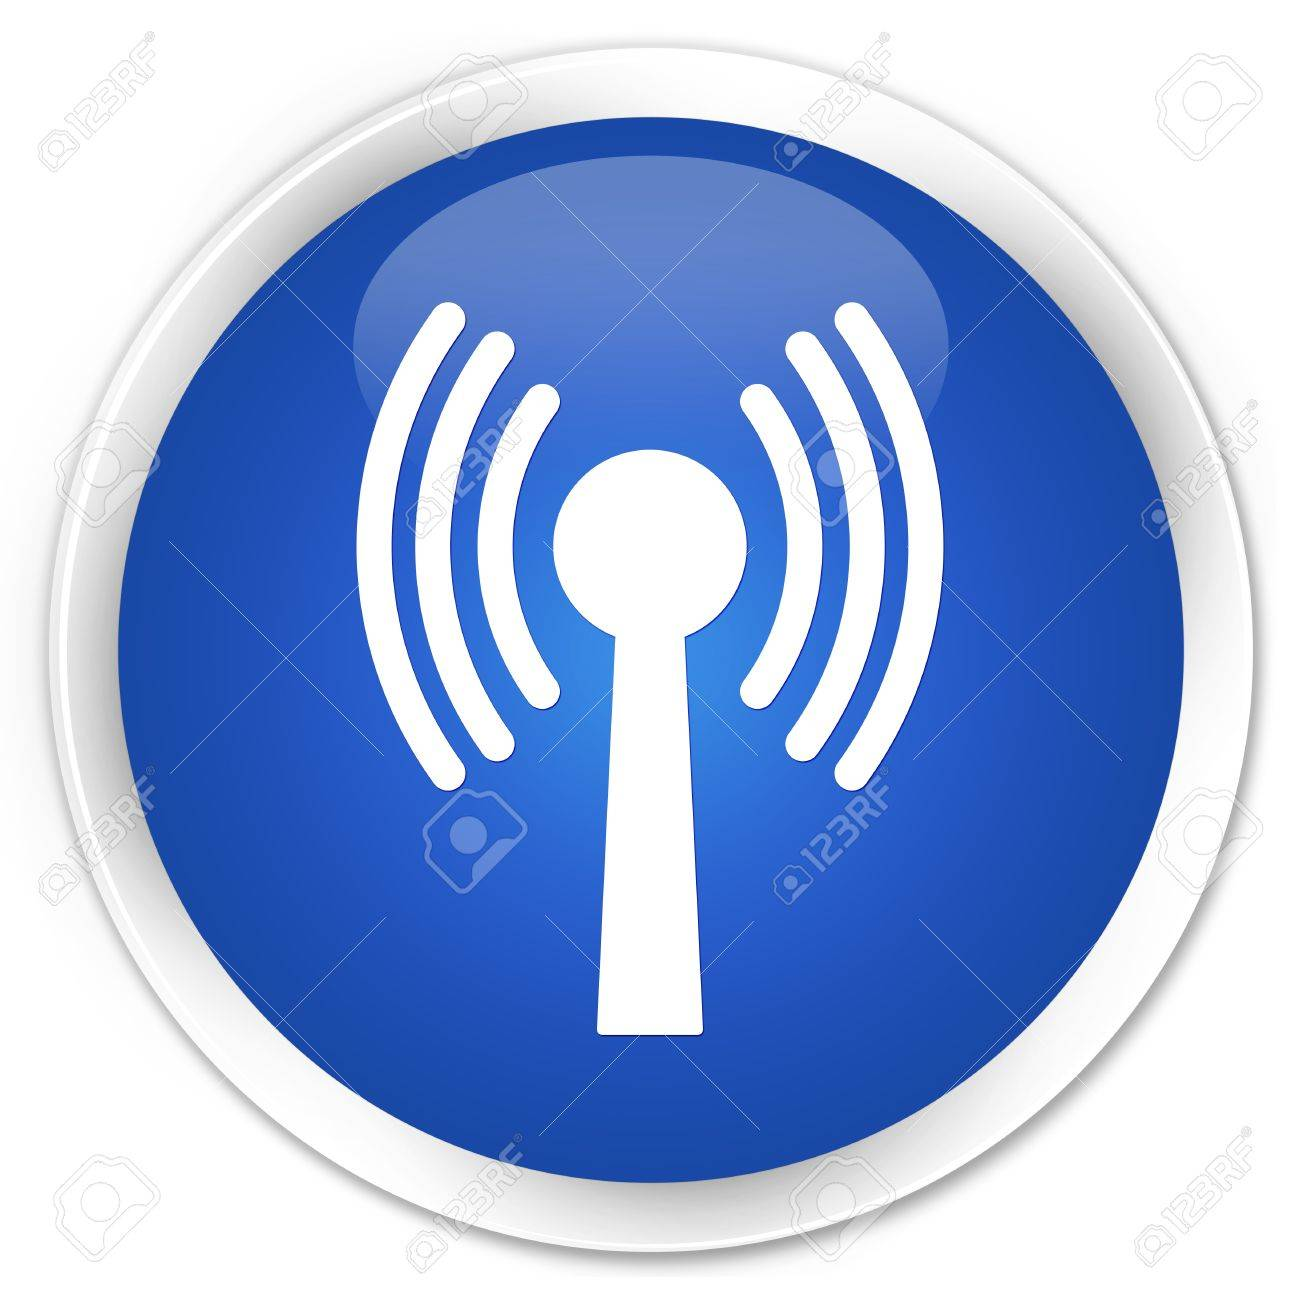 Wlan network icon glossy blue button Stock Photo - 15843395